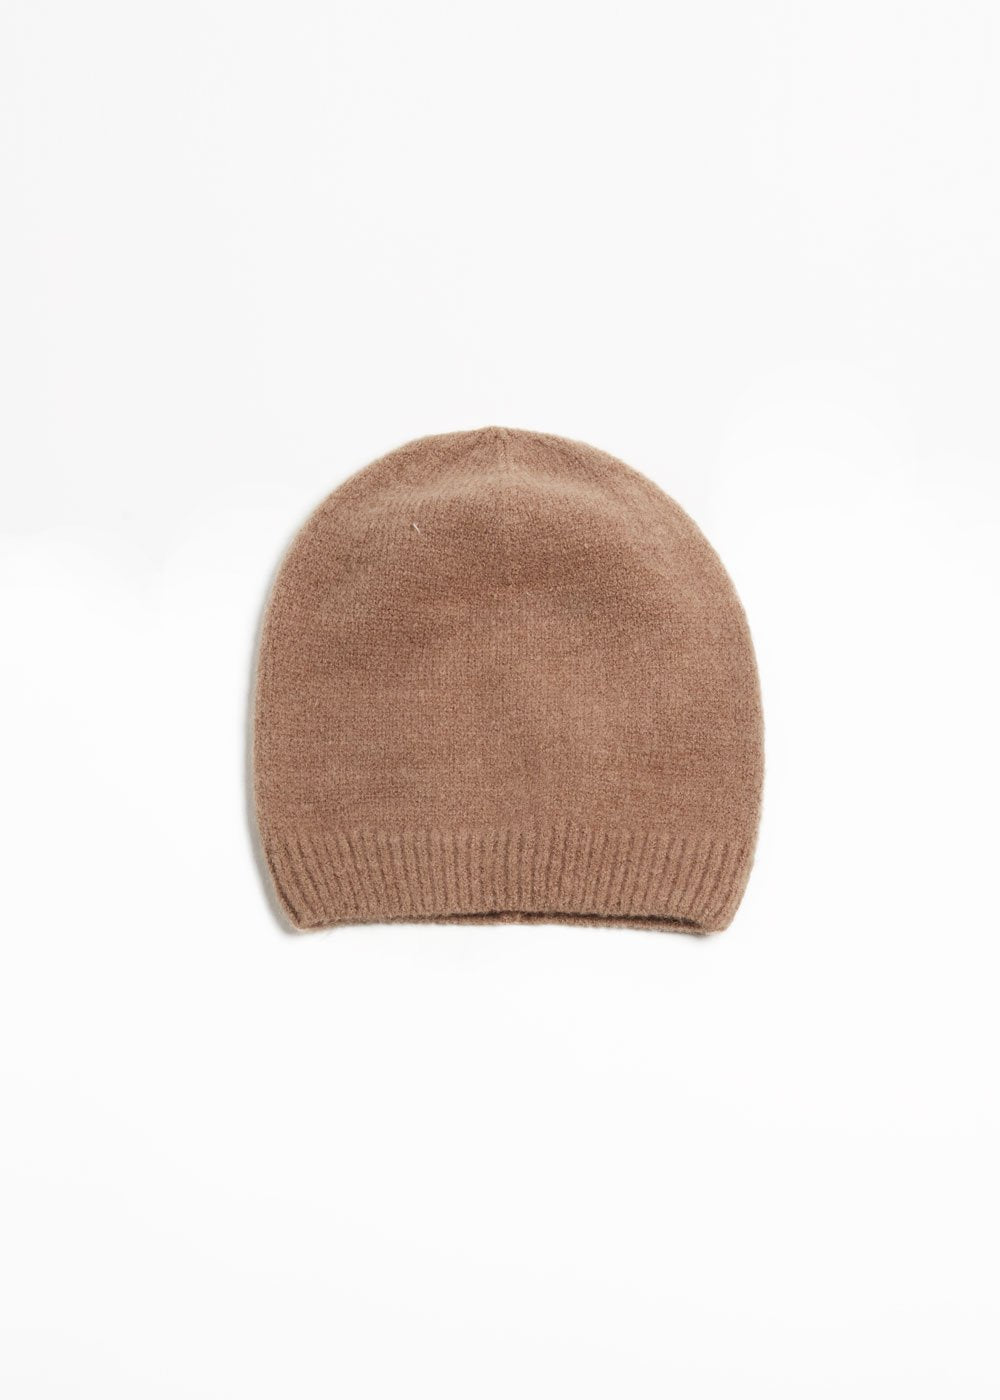 Cashmere Blend Stocking Hat